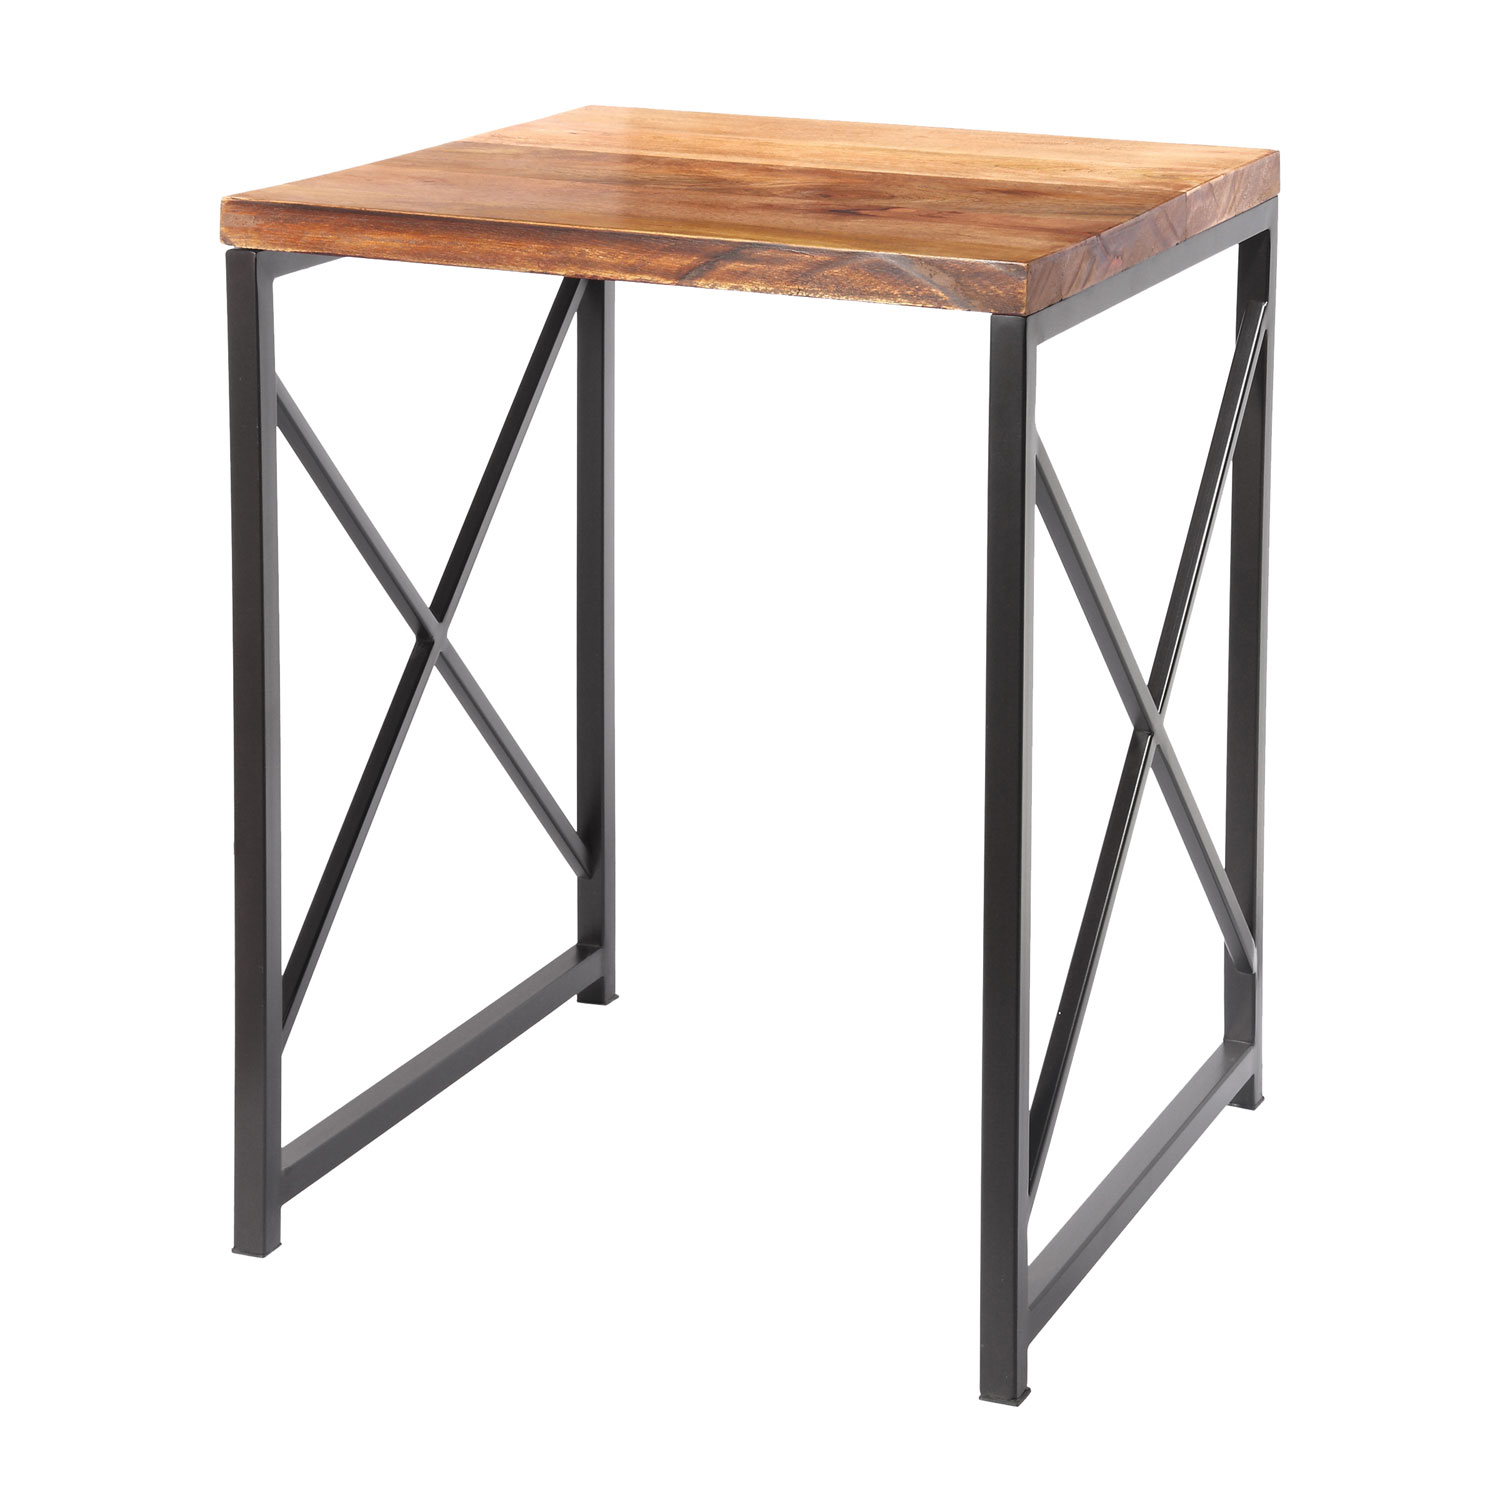 kenroy home plank light natural oil rubbed bronze metal frame accent tables table homebase garden chairs pottery barn legs drum seat height small deck furniture covers hand